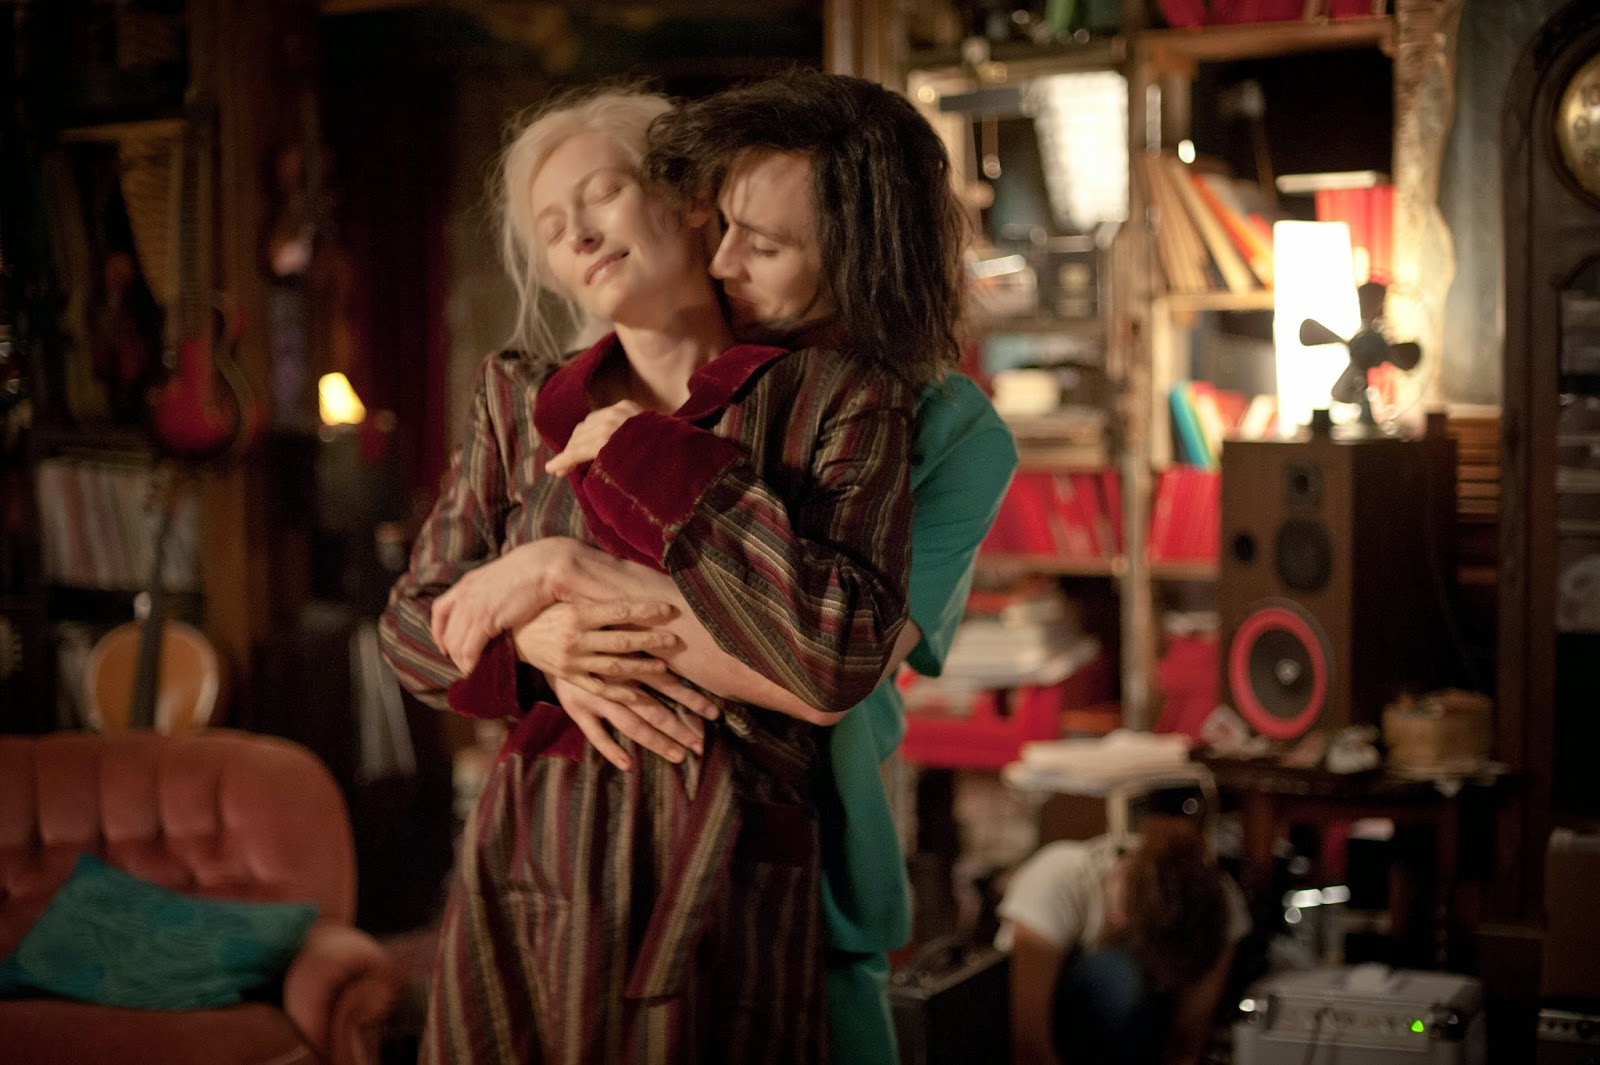 O romance vampiresco de Only Lovers Left Alive